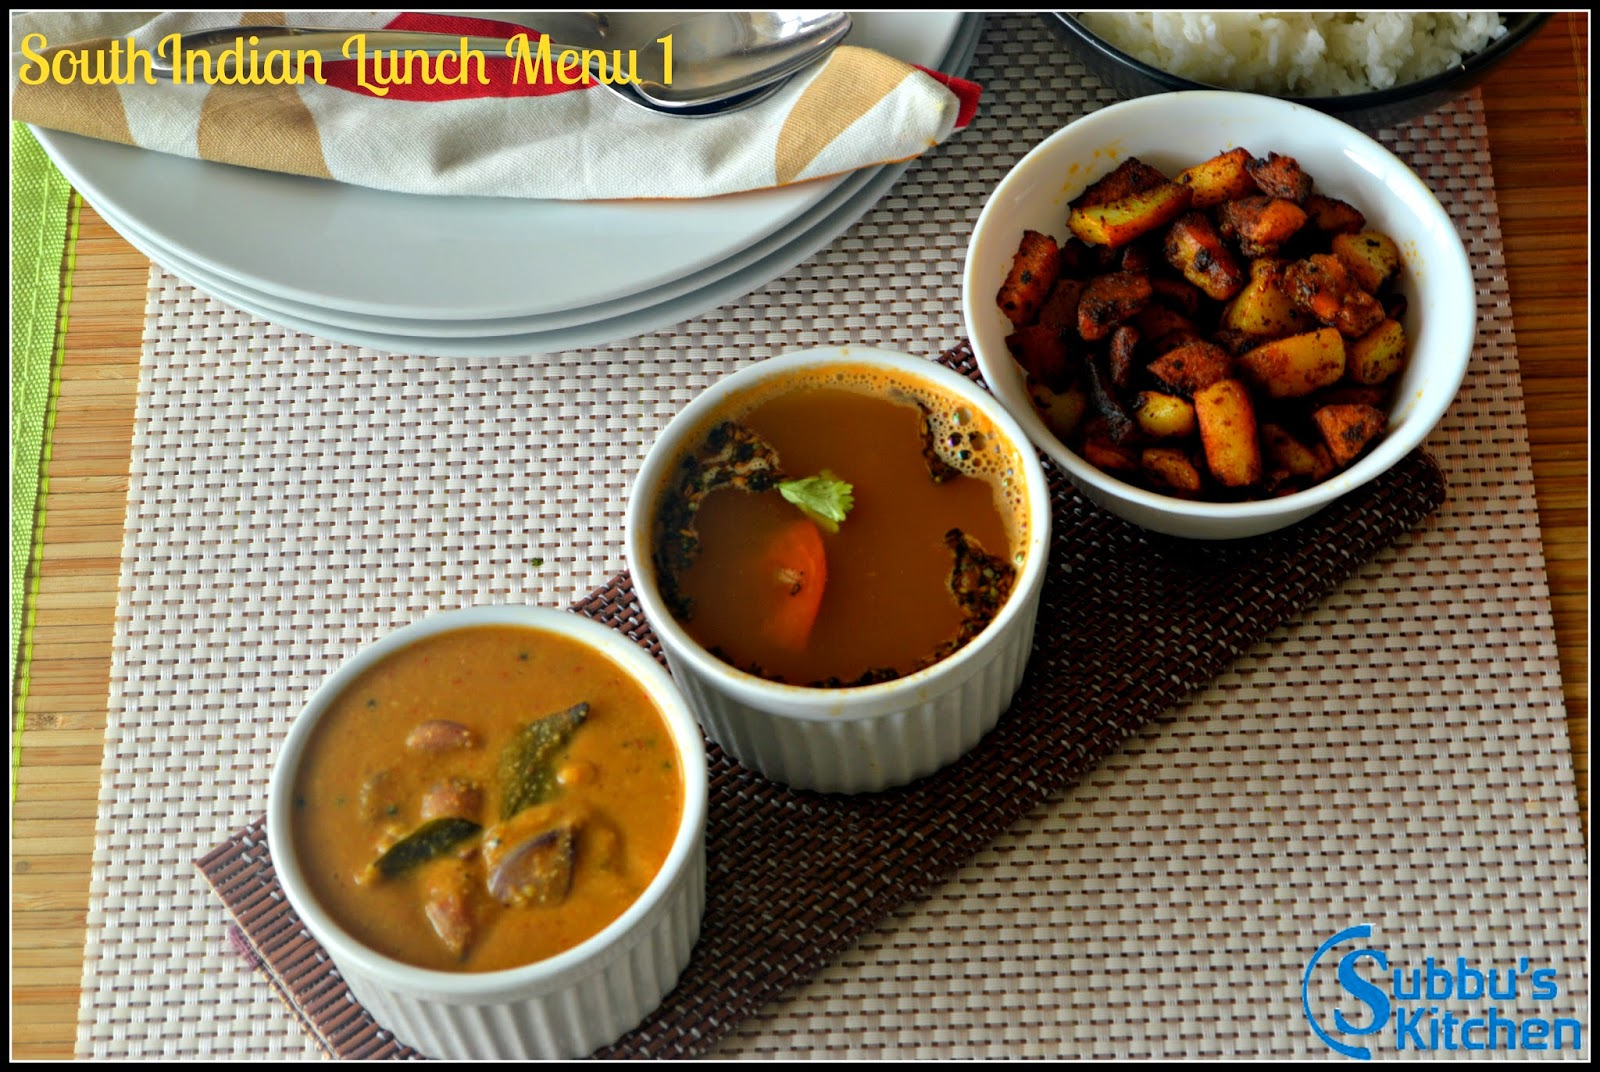 SouthIndian Lunch Menu Ideas  1 - Vengaya Sambar, Thakkali Rasam and Urulai Kara Curry